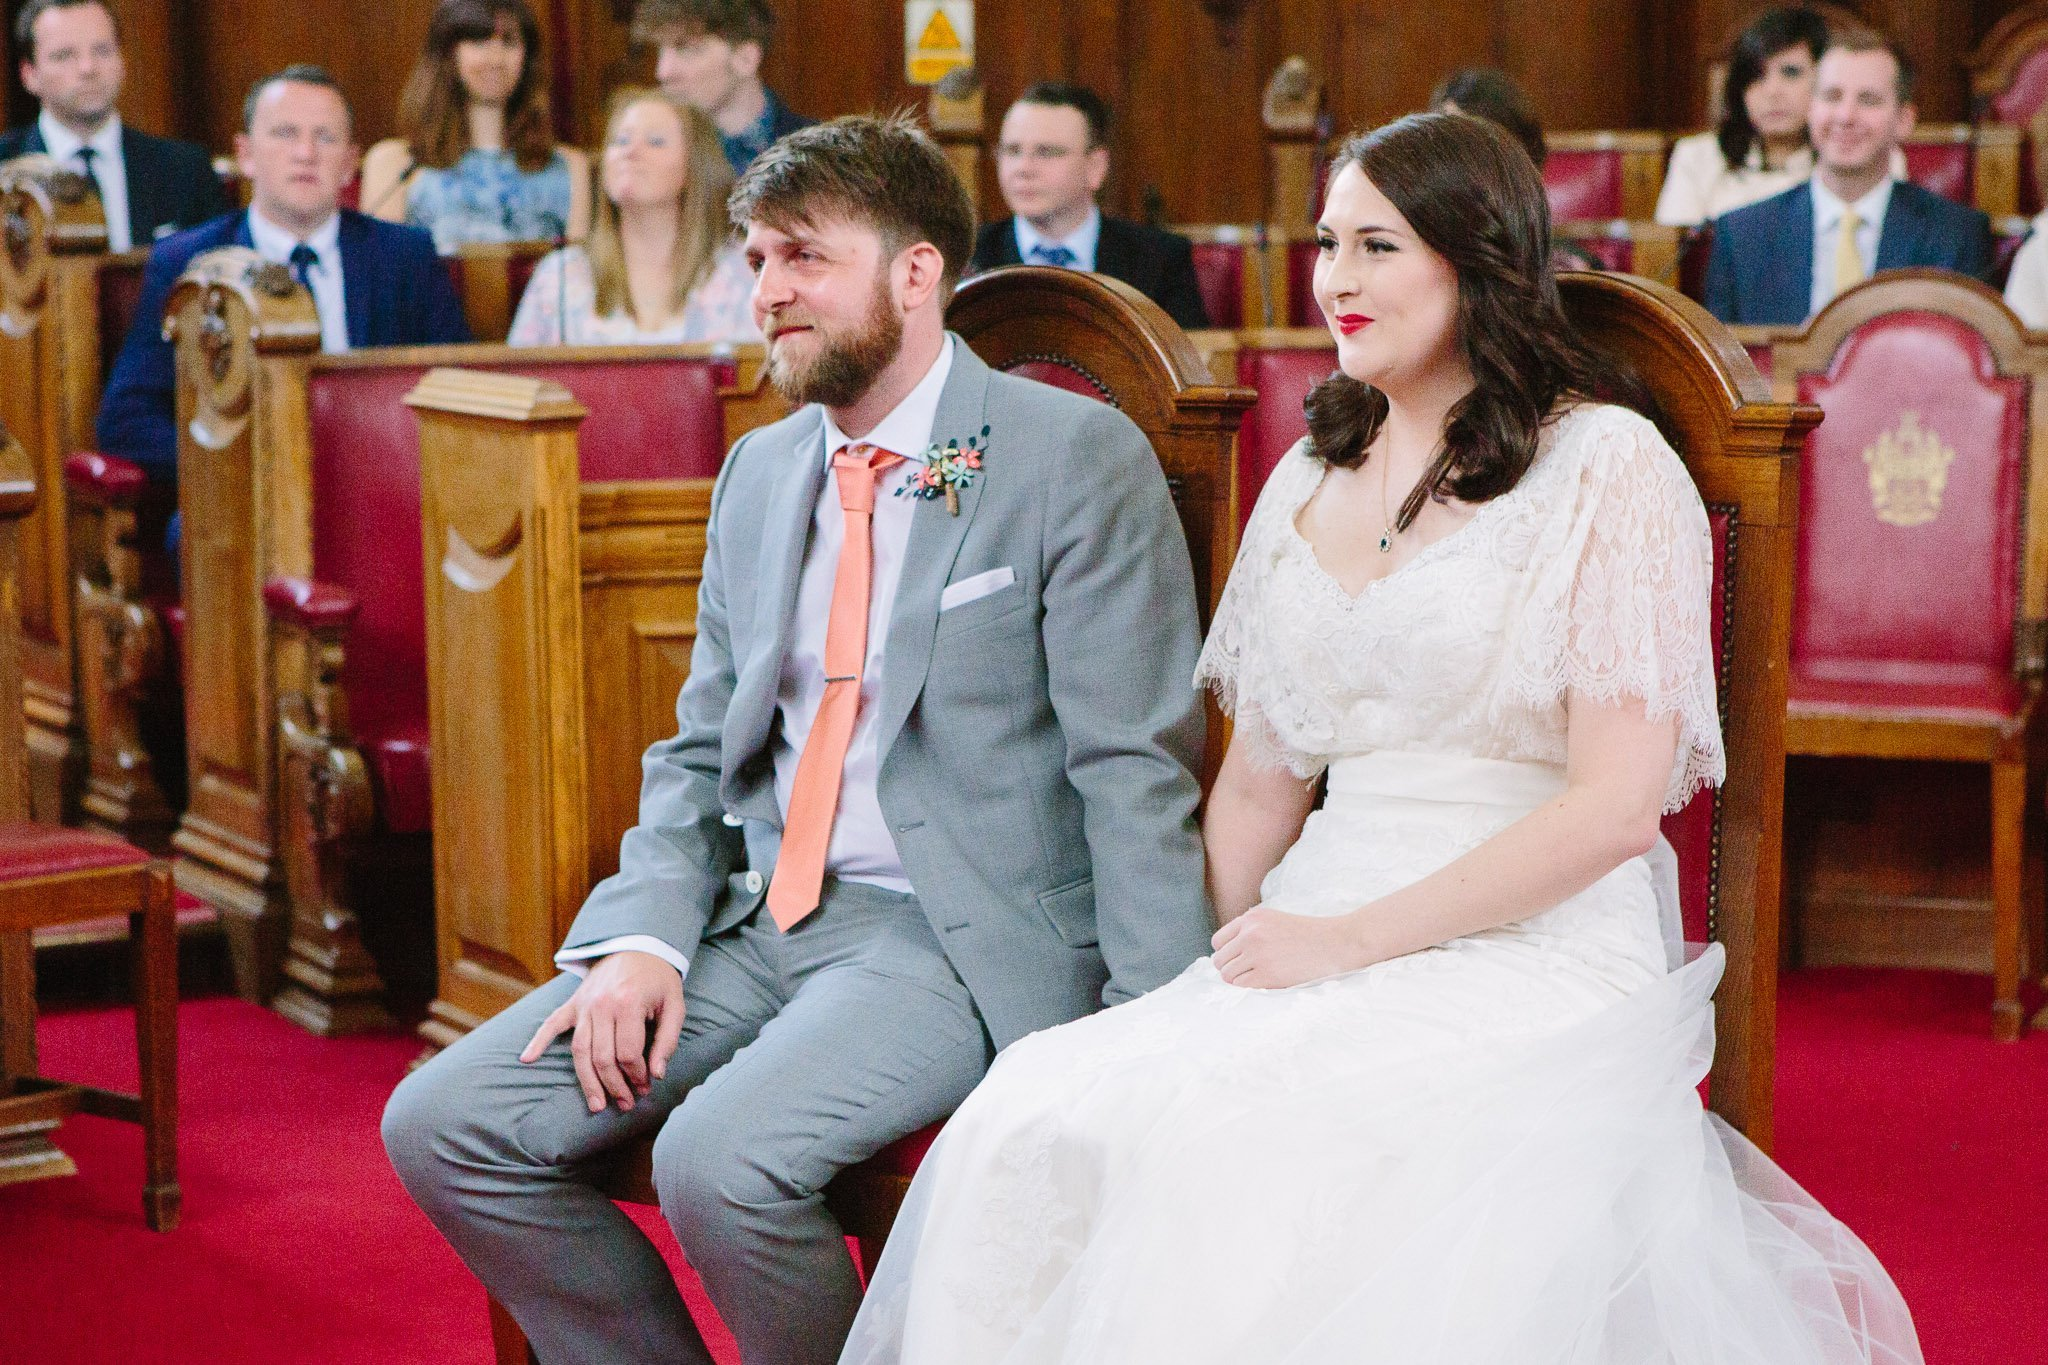 Seated bride & groom at ceremony at Islington Town Hall